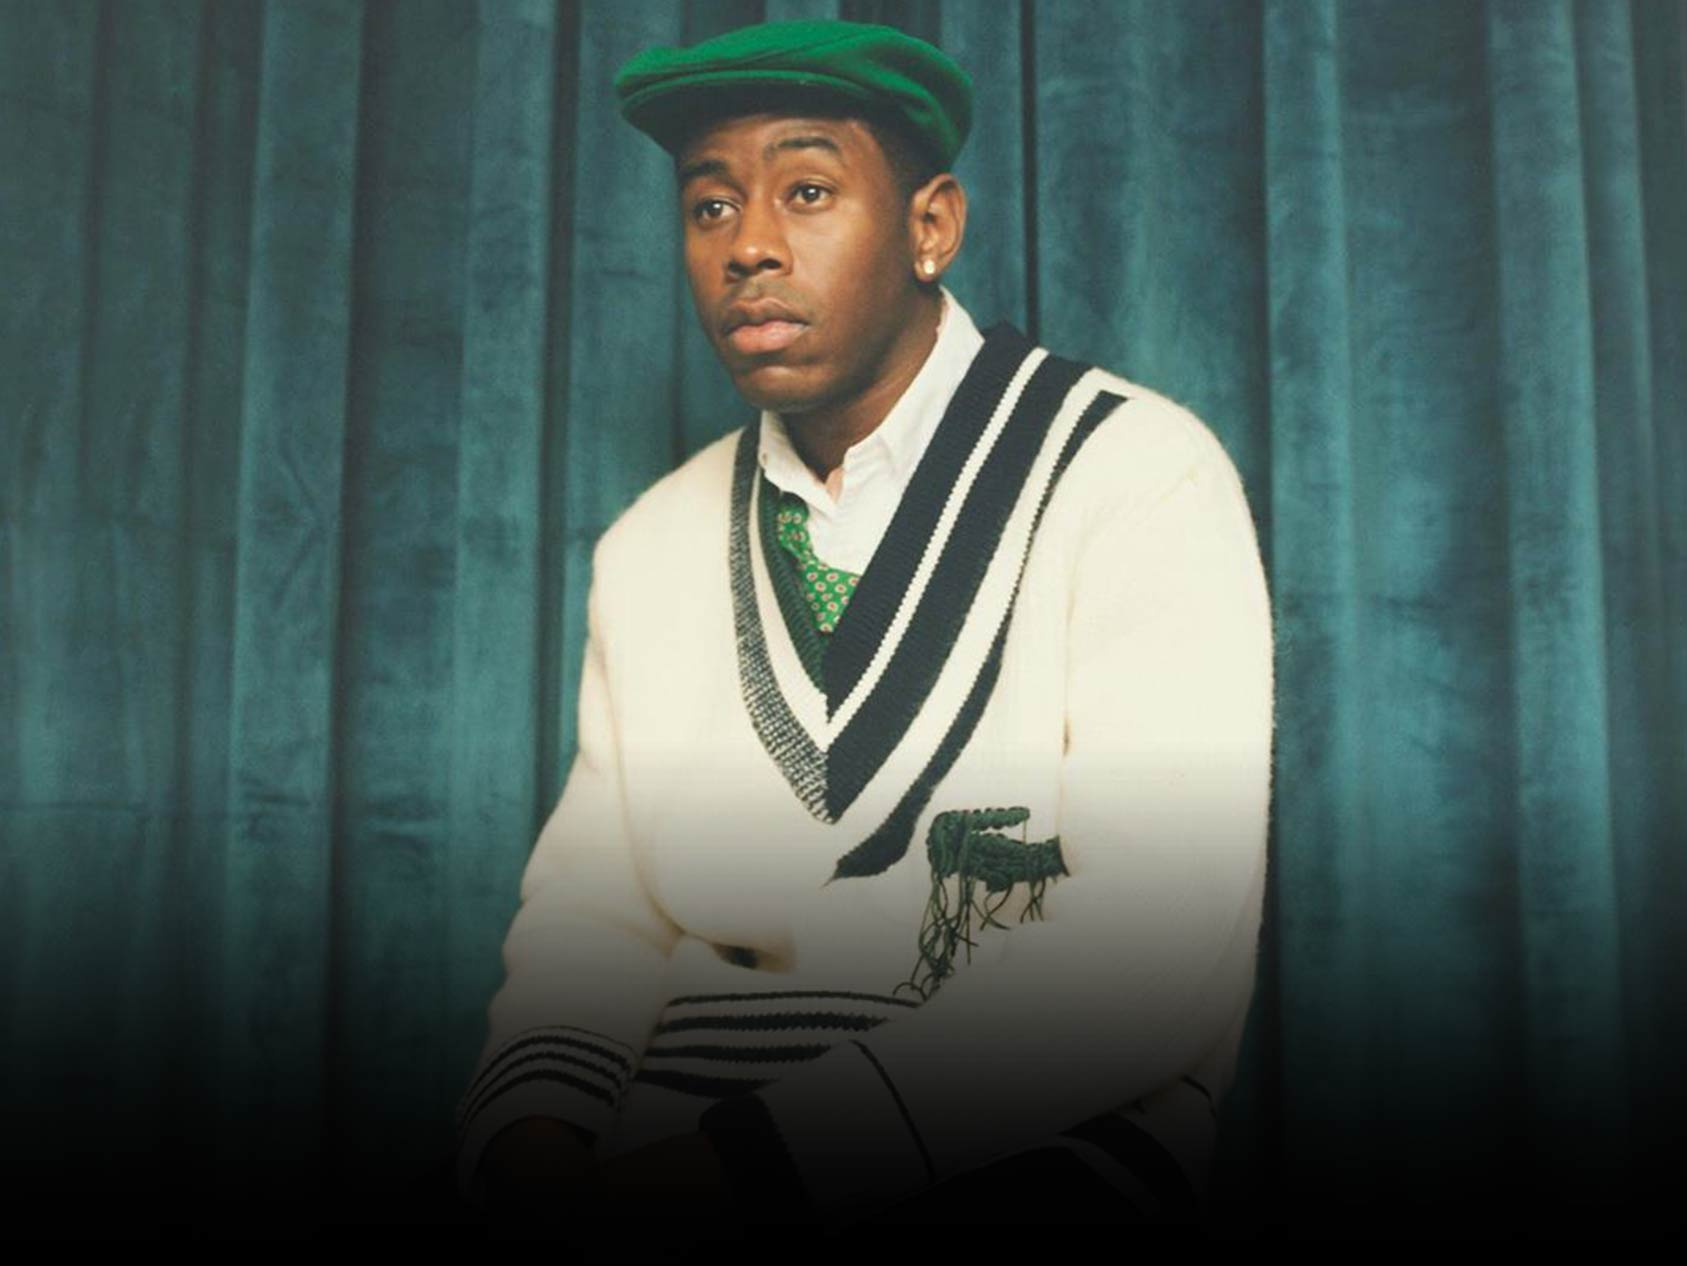 Tyler, The Creator is joining Billie Eilish and Ariana Grande as a Performer at the 2020 Grammys